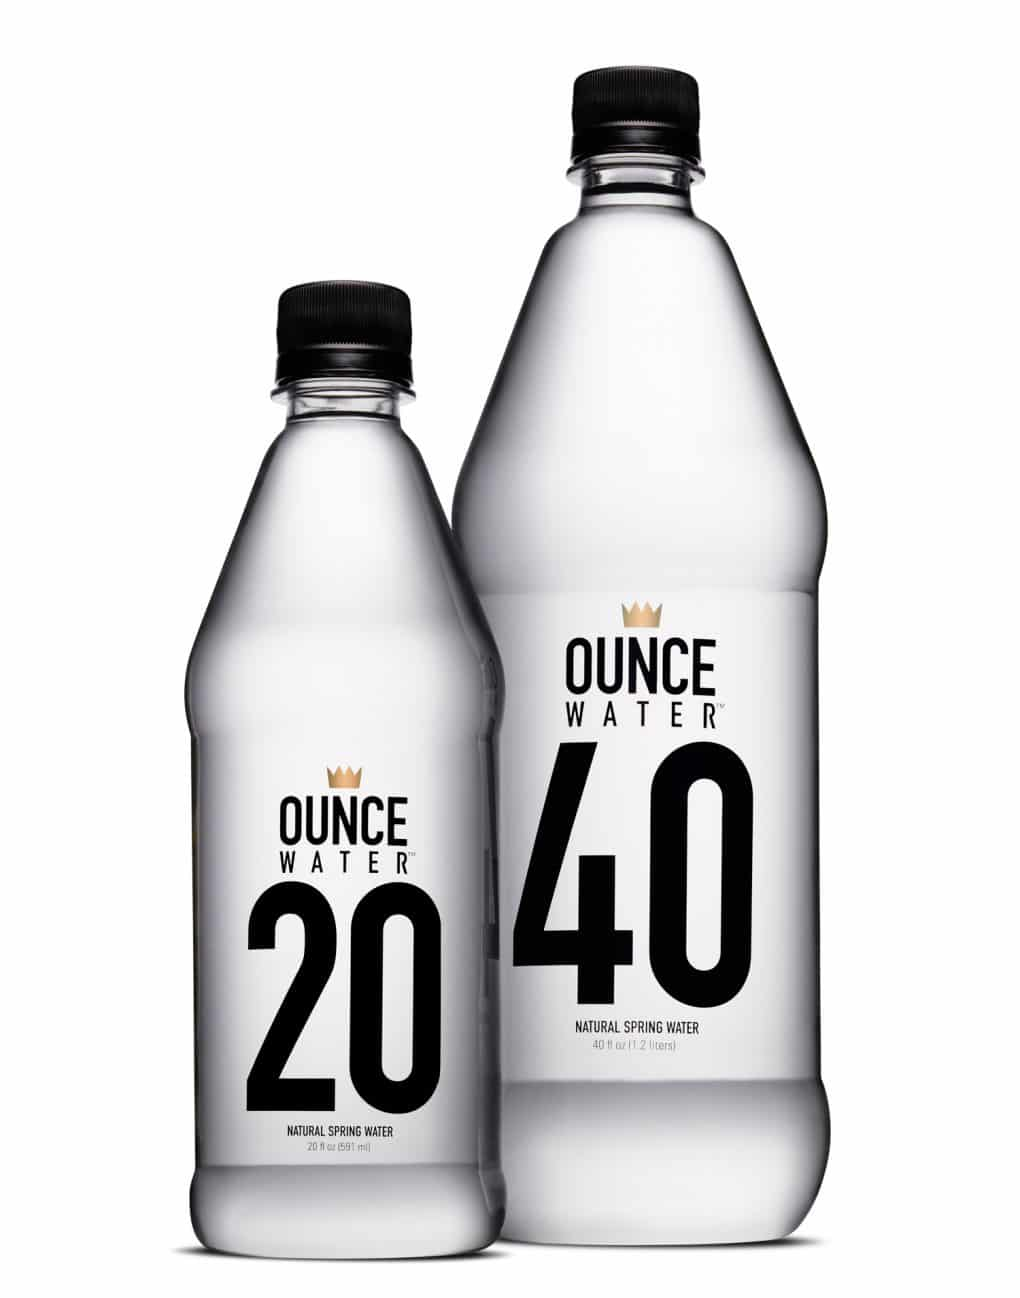 Ounce Water Named Official Bottled Water Partner of Empire Outlets -  BevNET.com